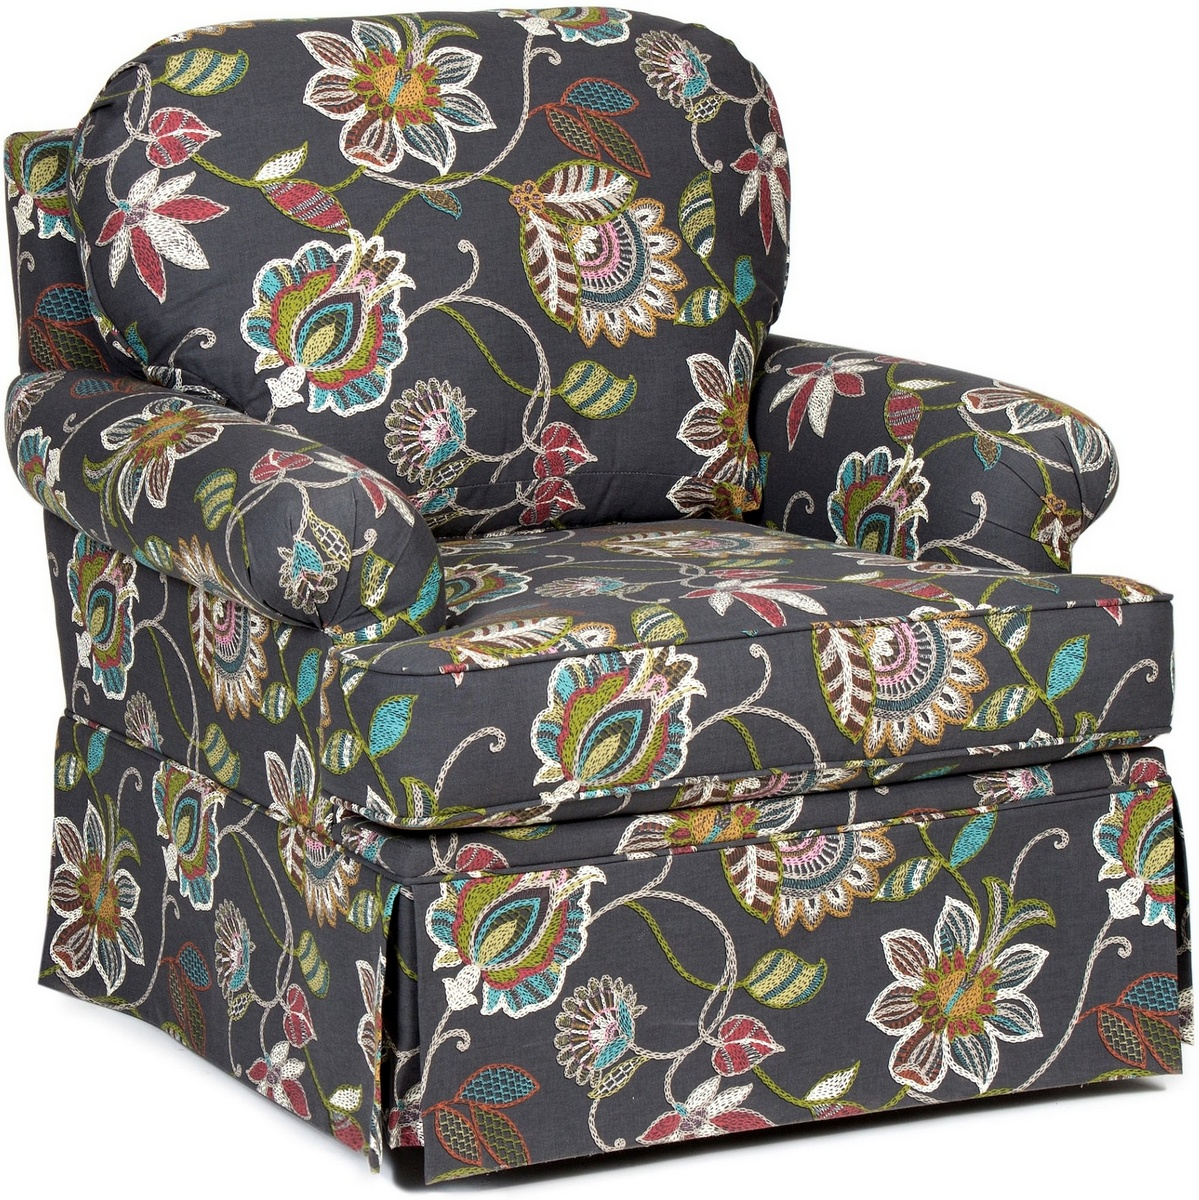 Chelsea Home Groton Swivel Glider Arm Chair Matador Rainbow